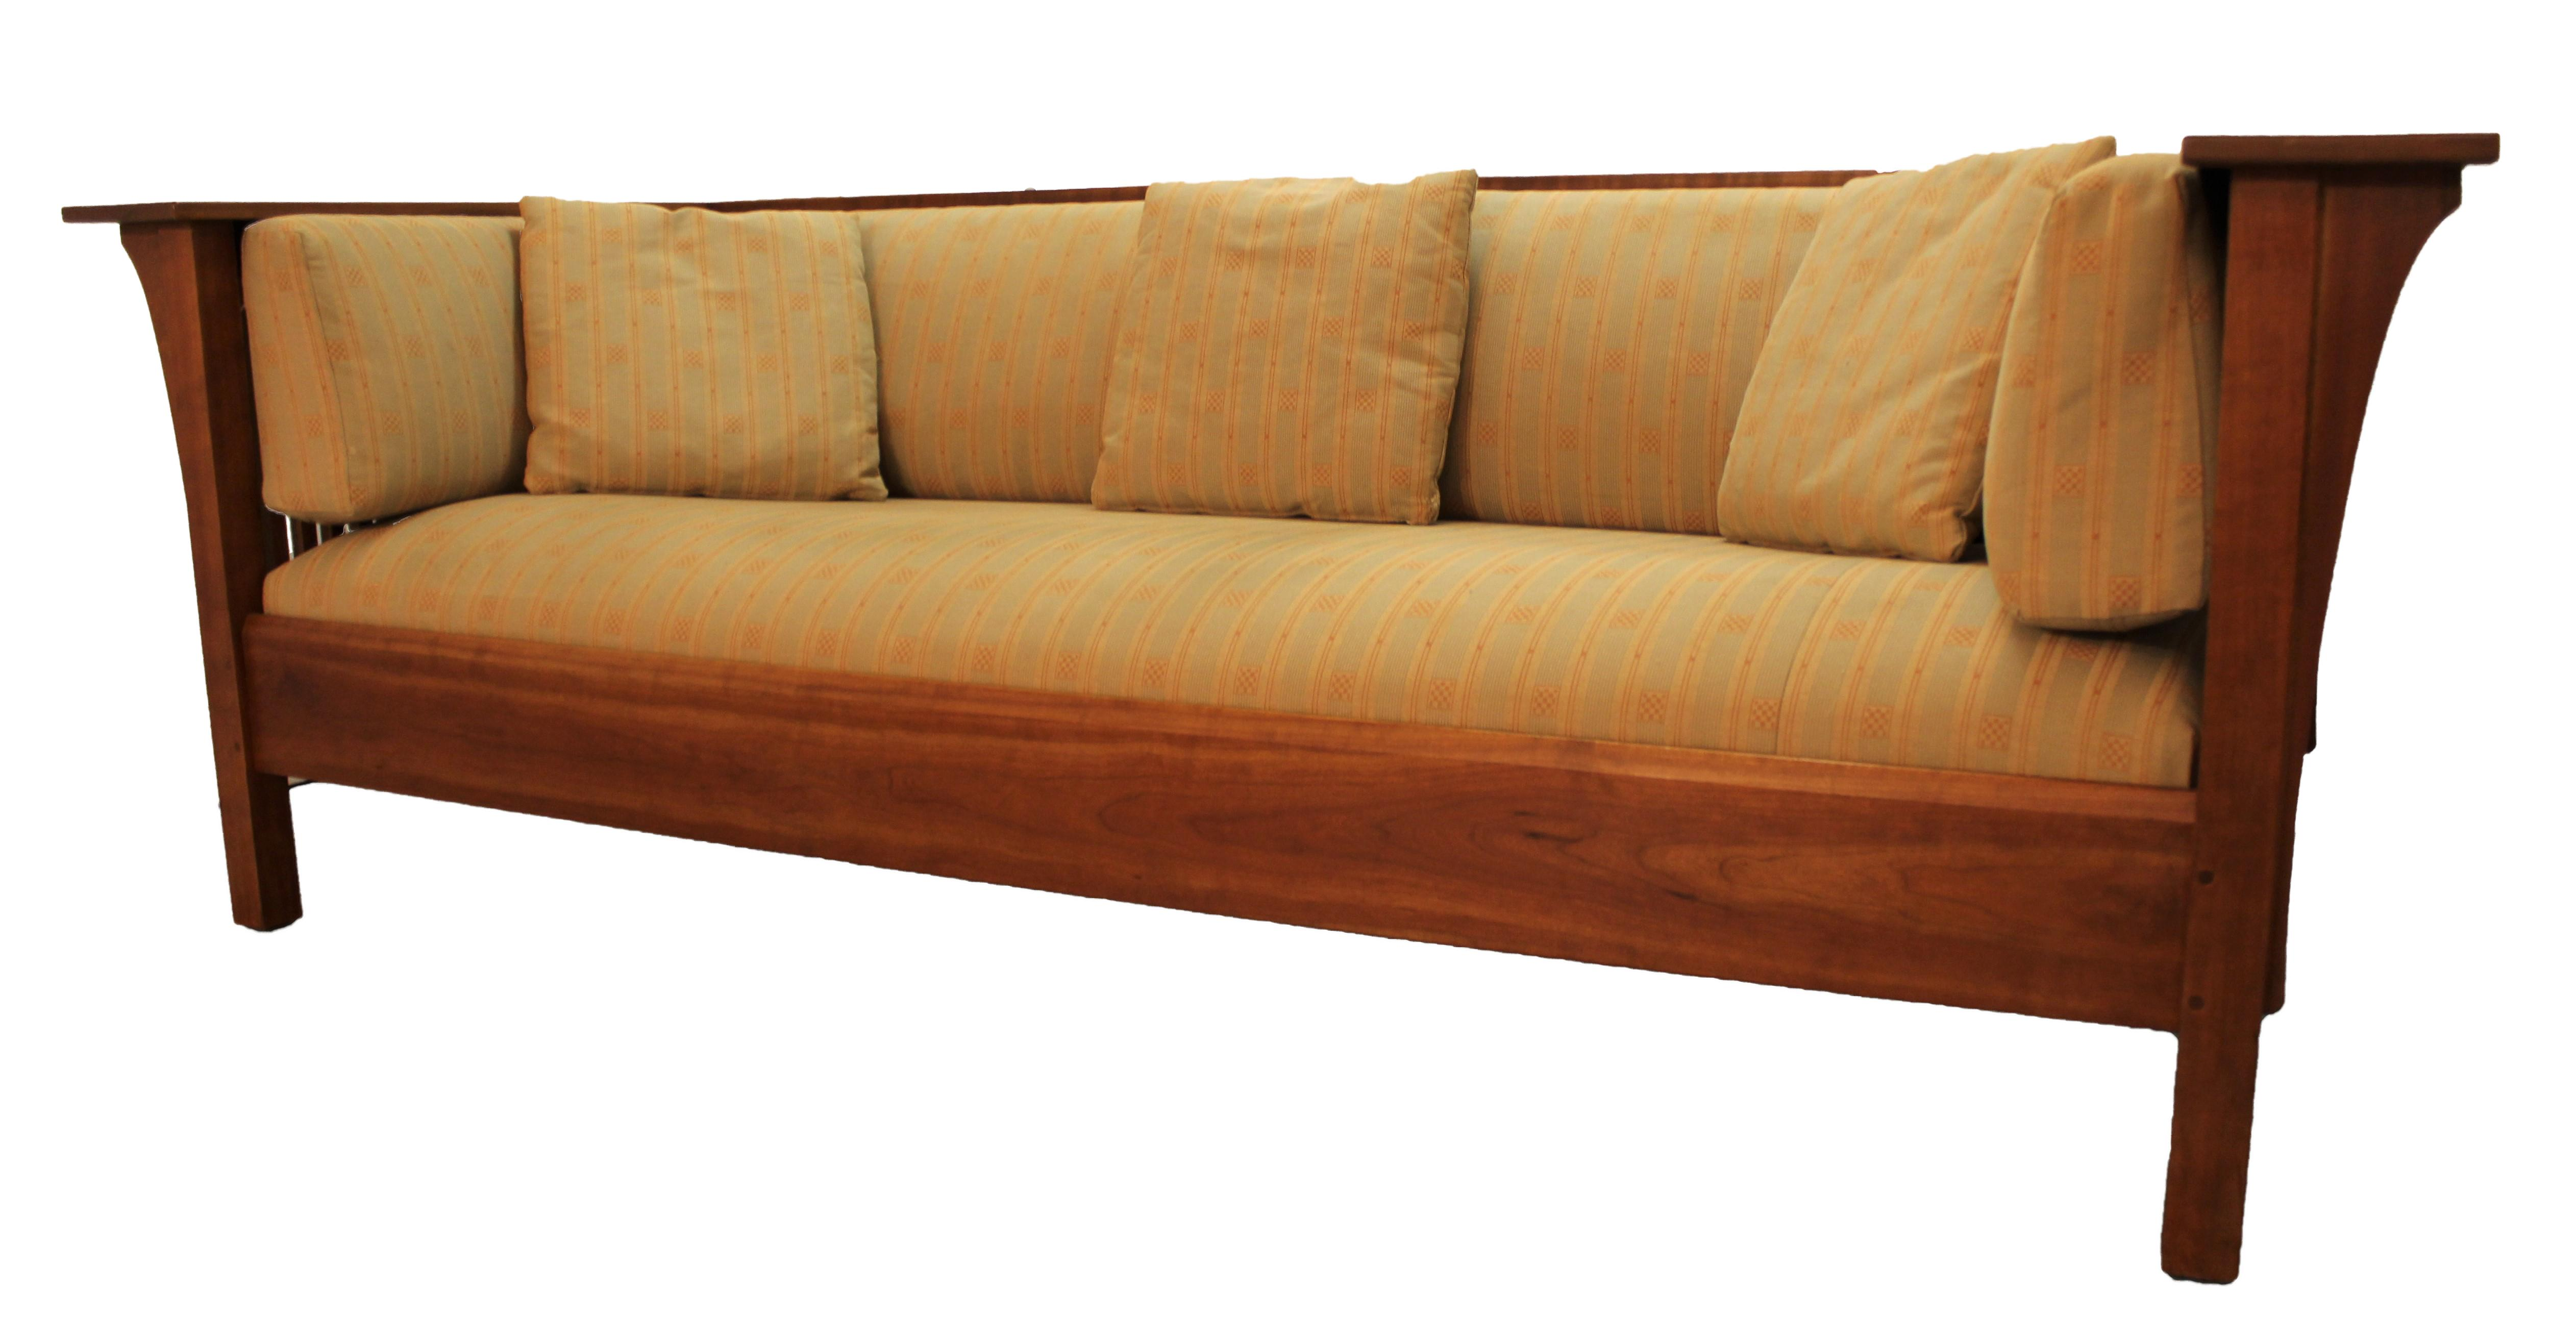 stickley fayetteville sleeper sofa source nanaimo arts and crafts long sofas southwestern mission